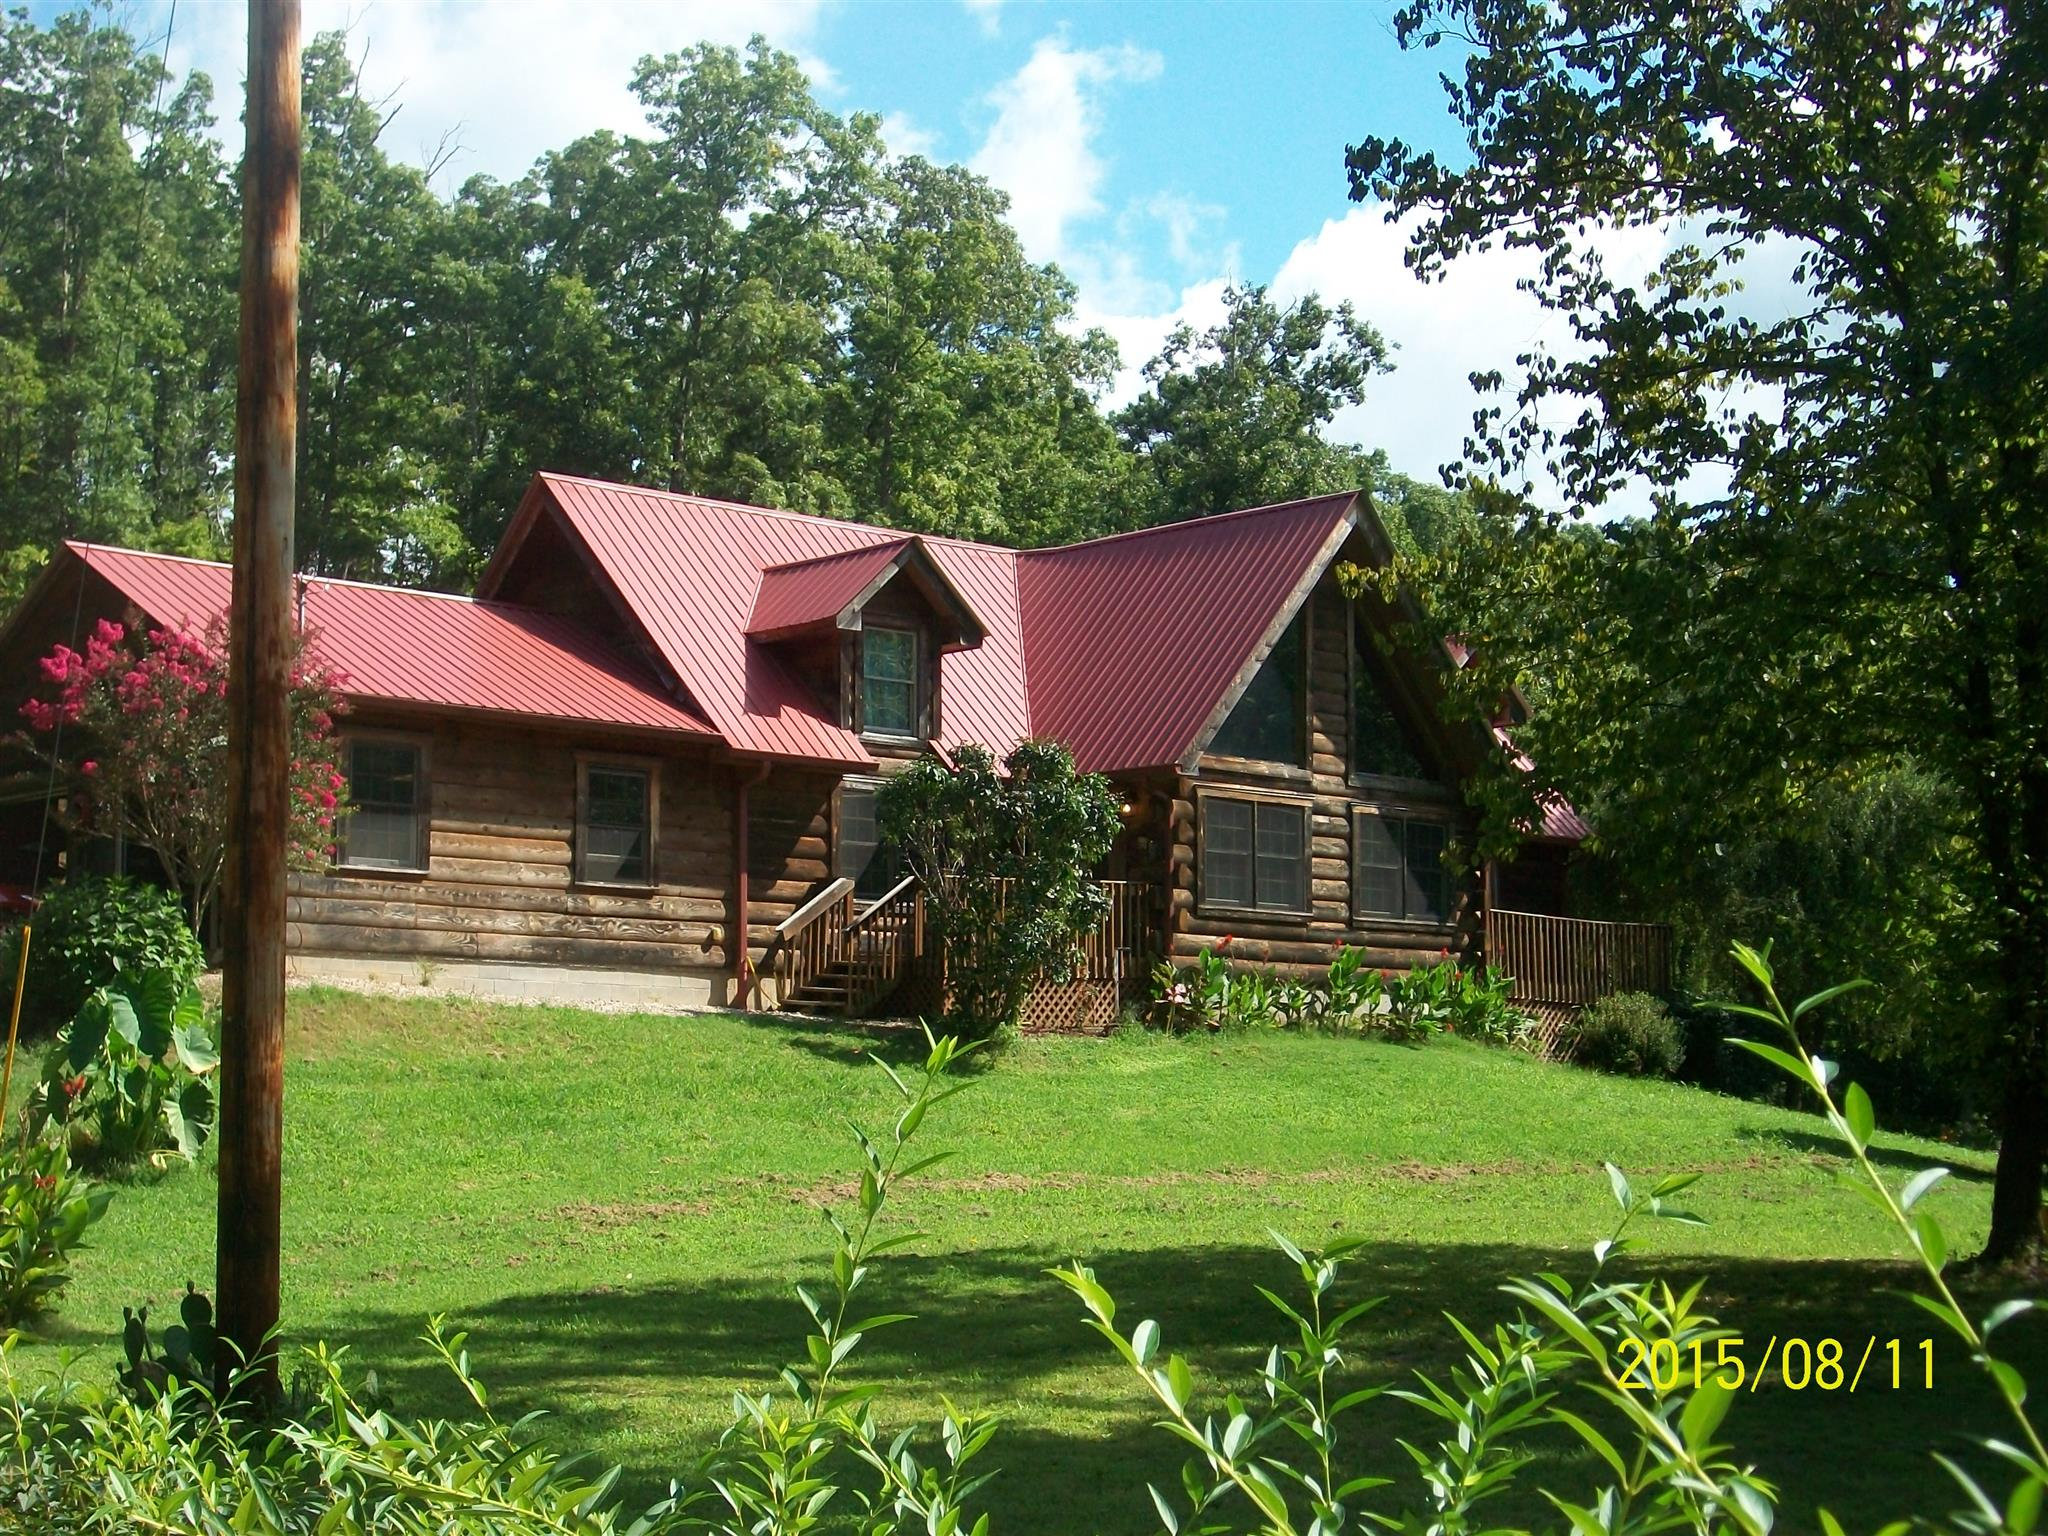 728 Green Hollow Rd, Linden, TN 37096